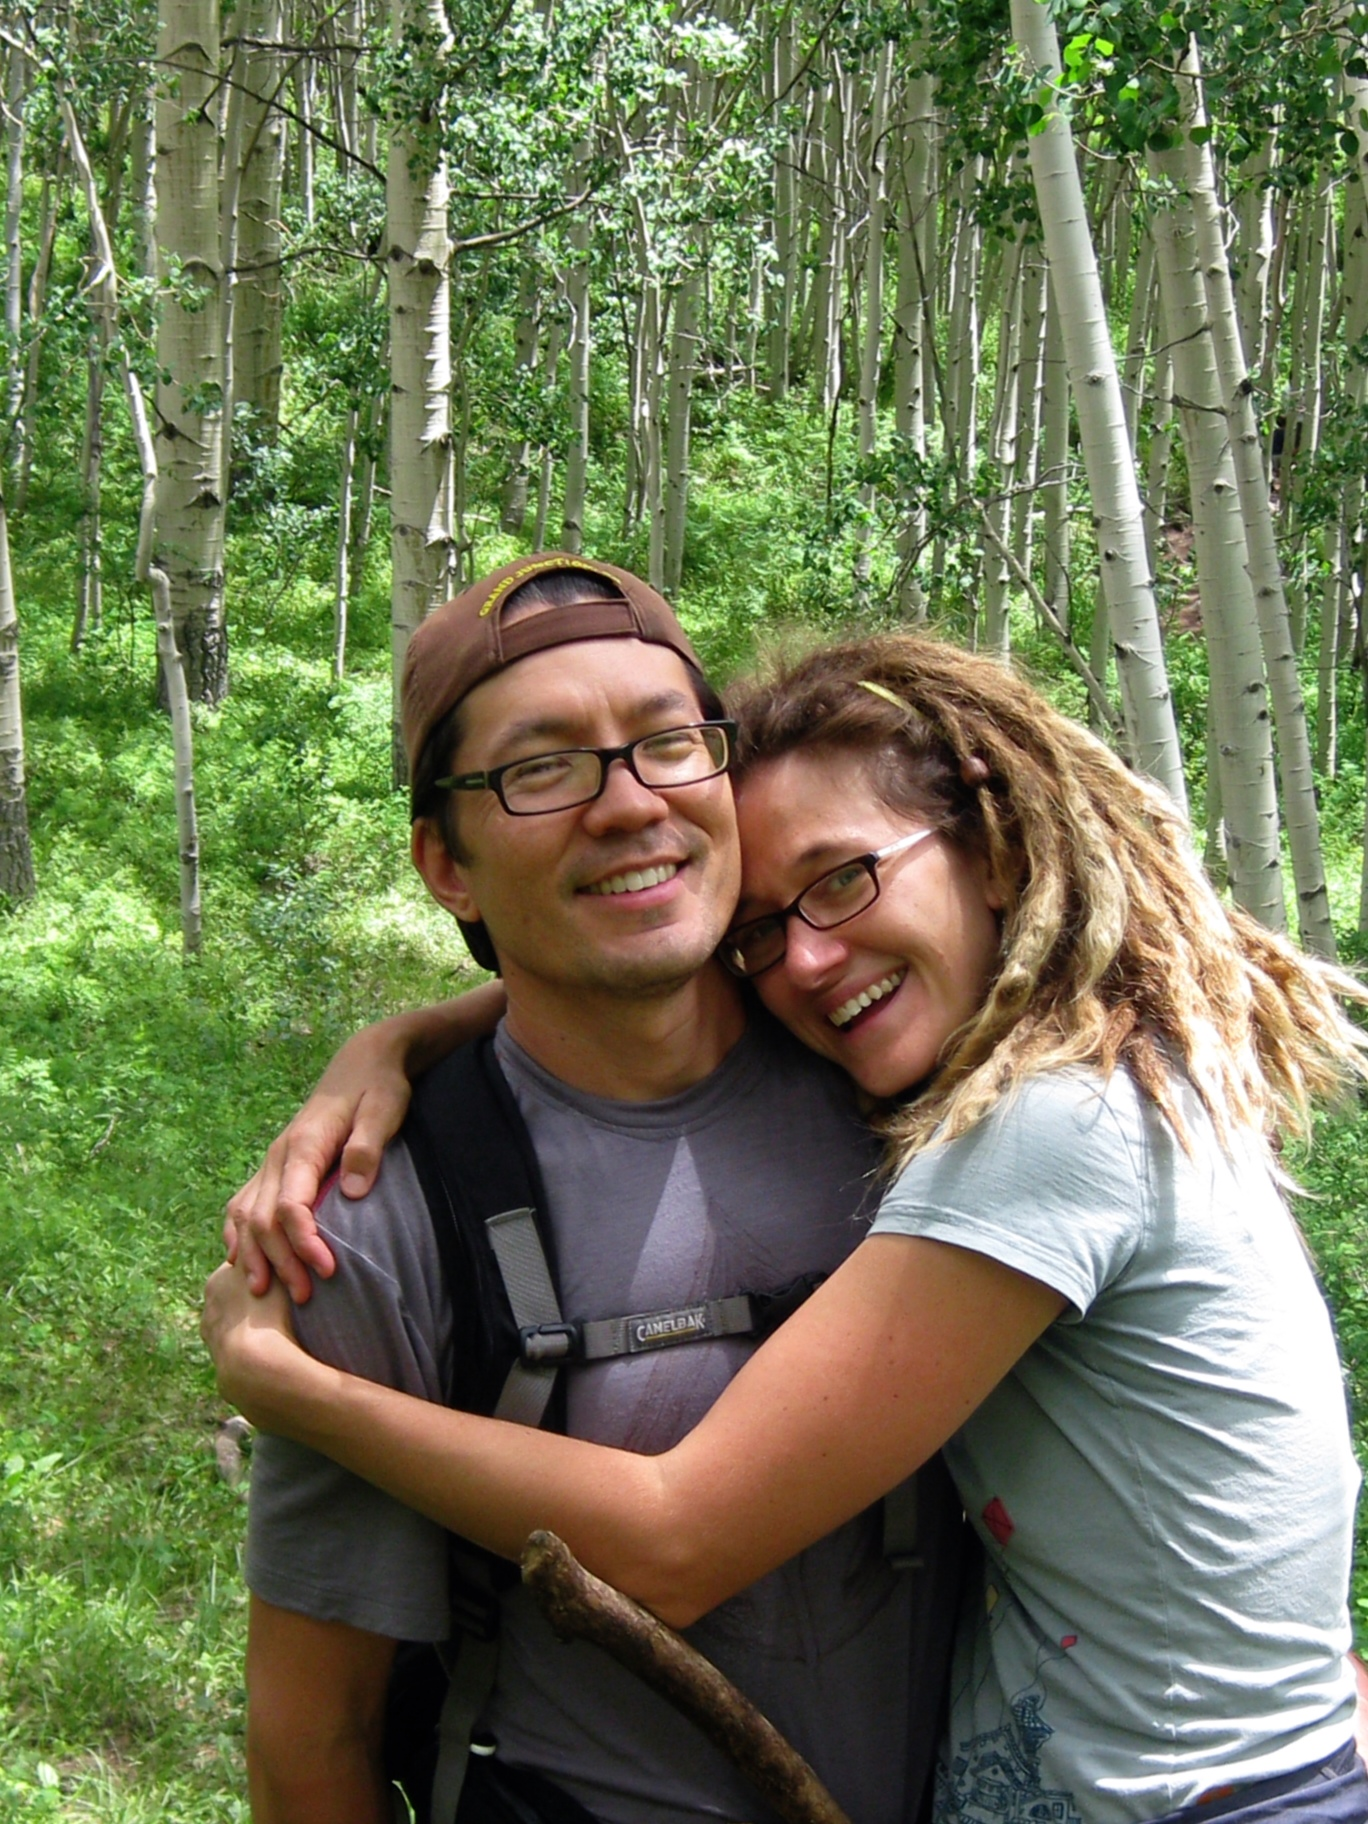 aspen trees, hiking, backpacking, chinos, dreadlocks